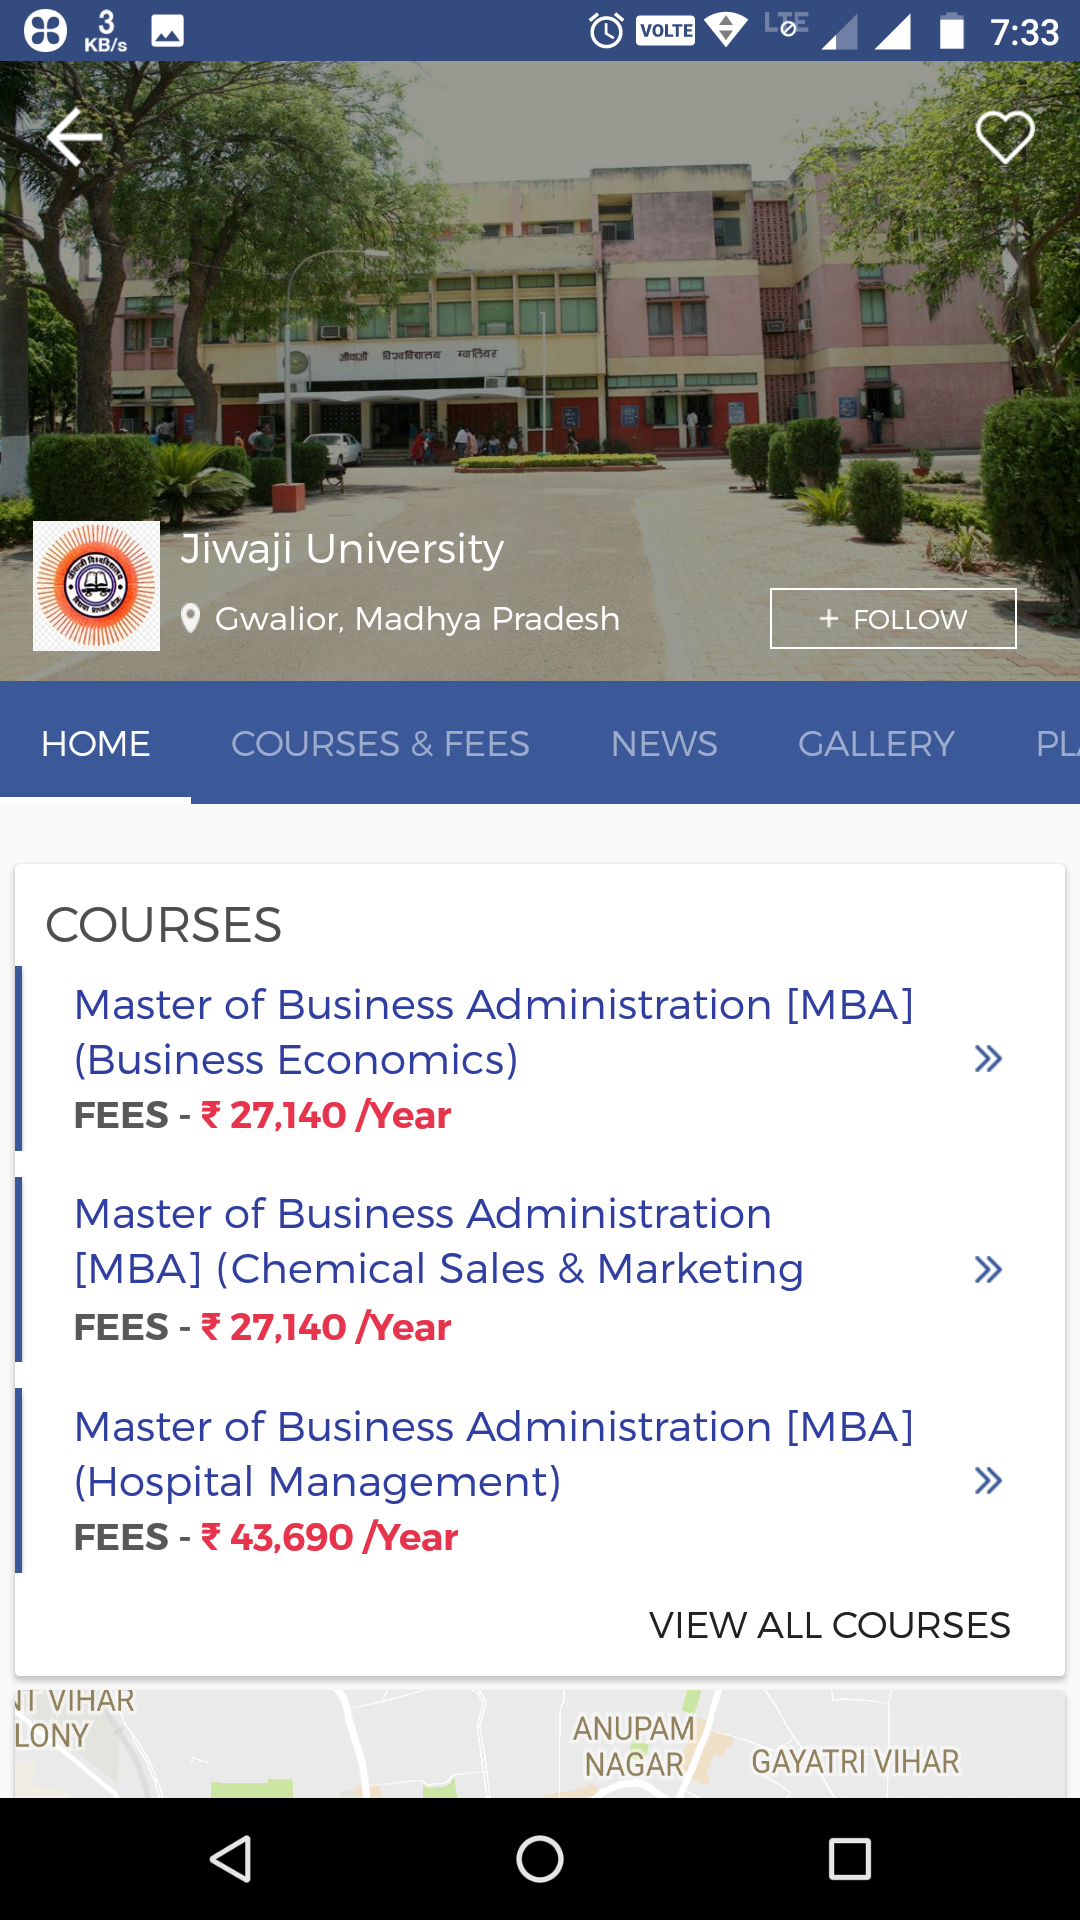 Jiwali-University-collegedunia